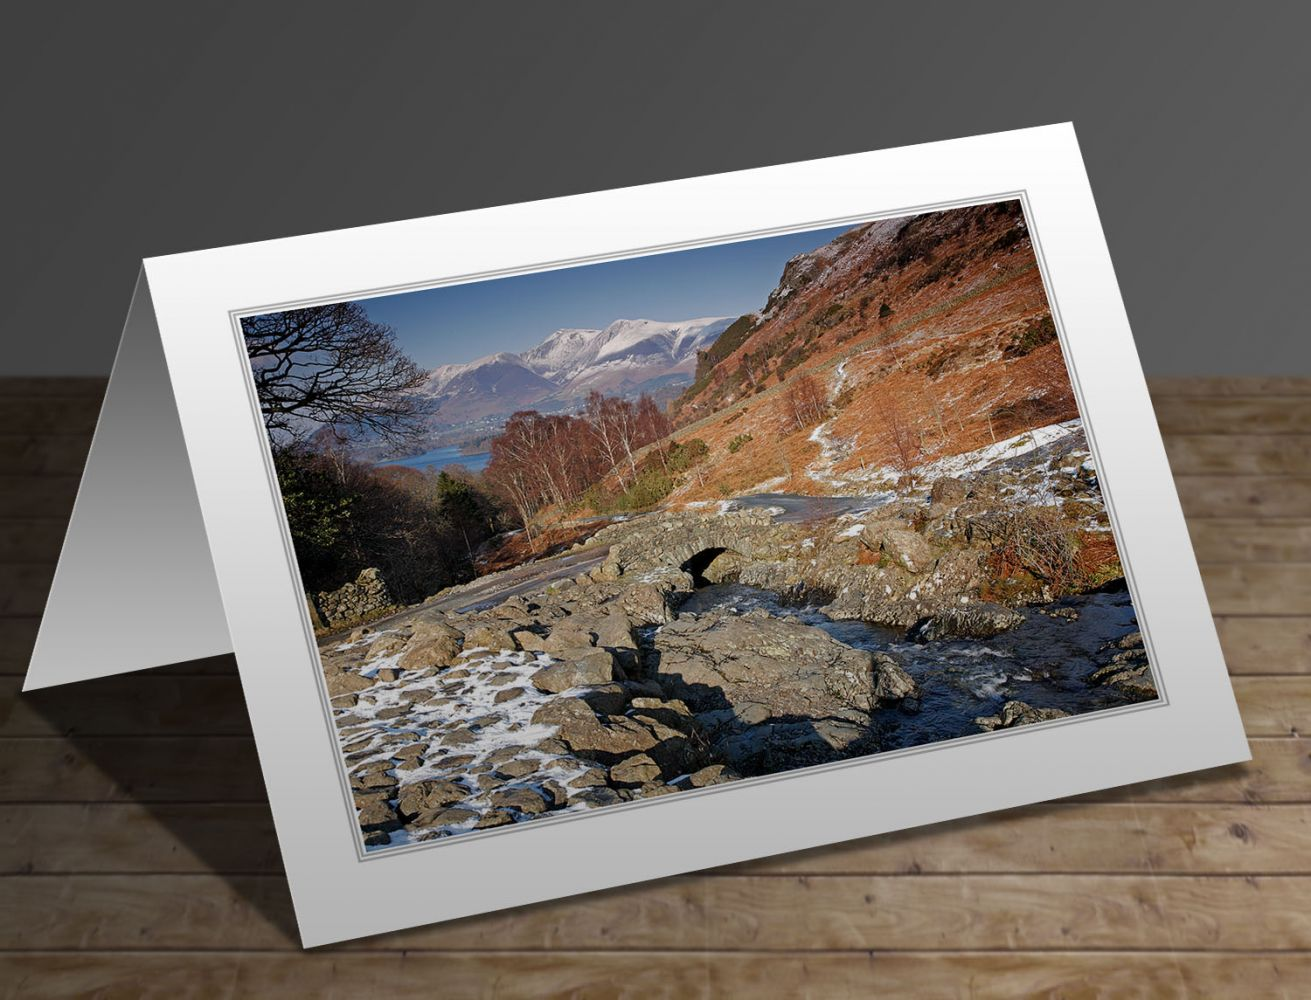 A greeting card containing the image Melting snow at Ashness Bridge in the English Lake District by Martin Lawrence